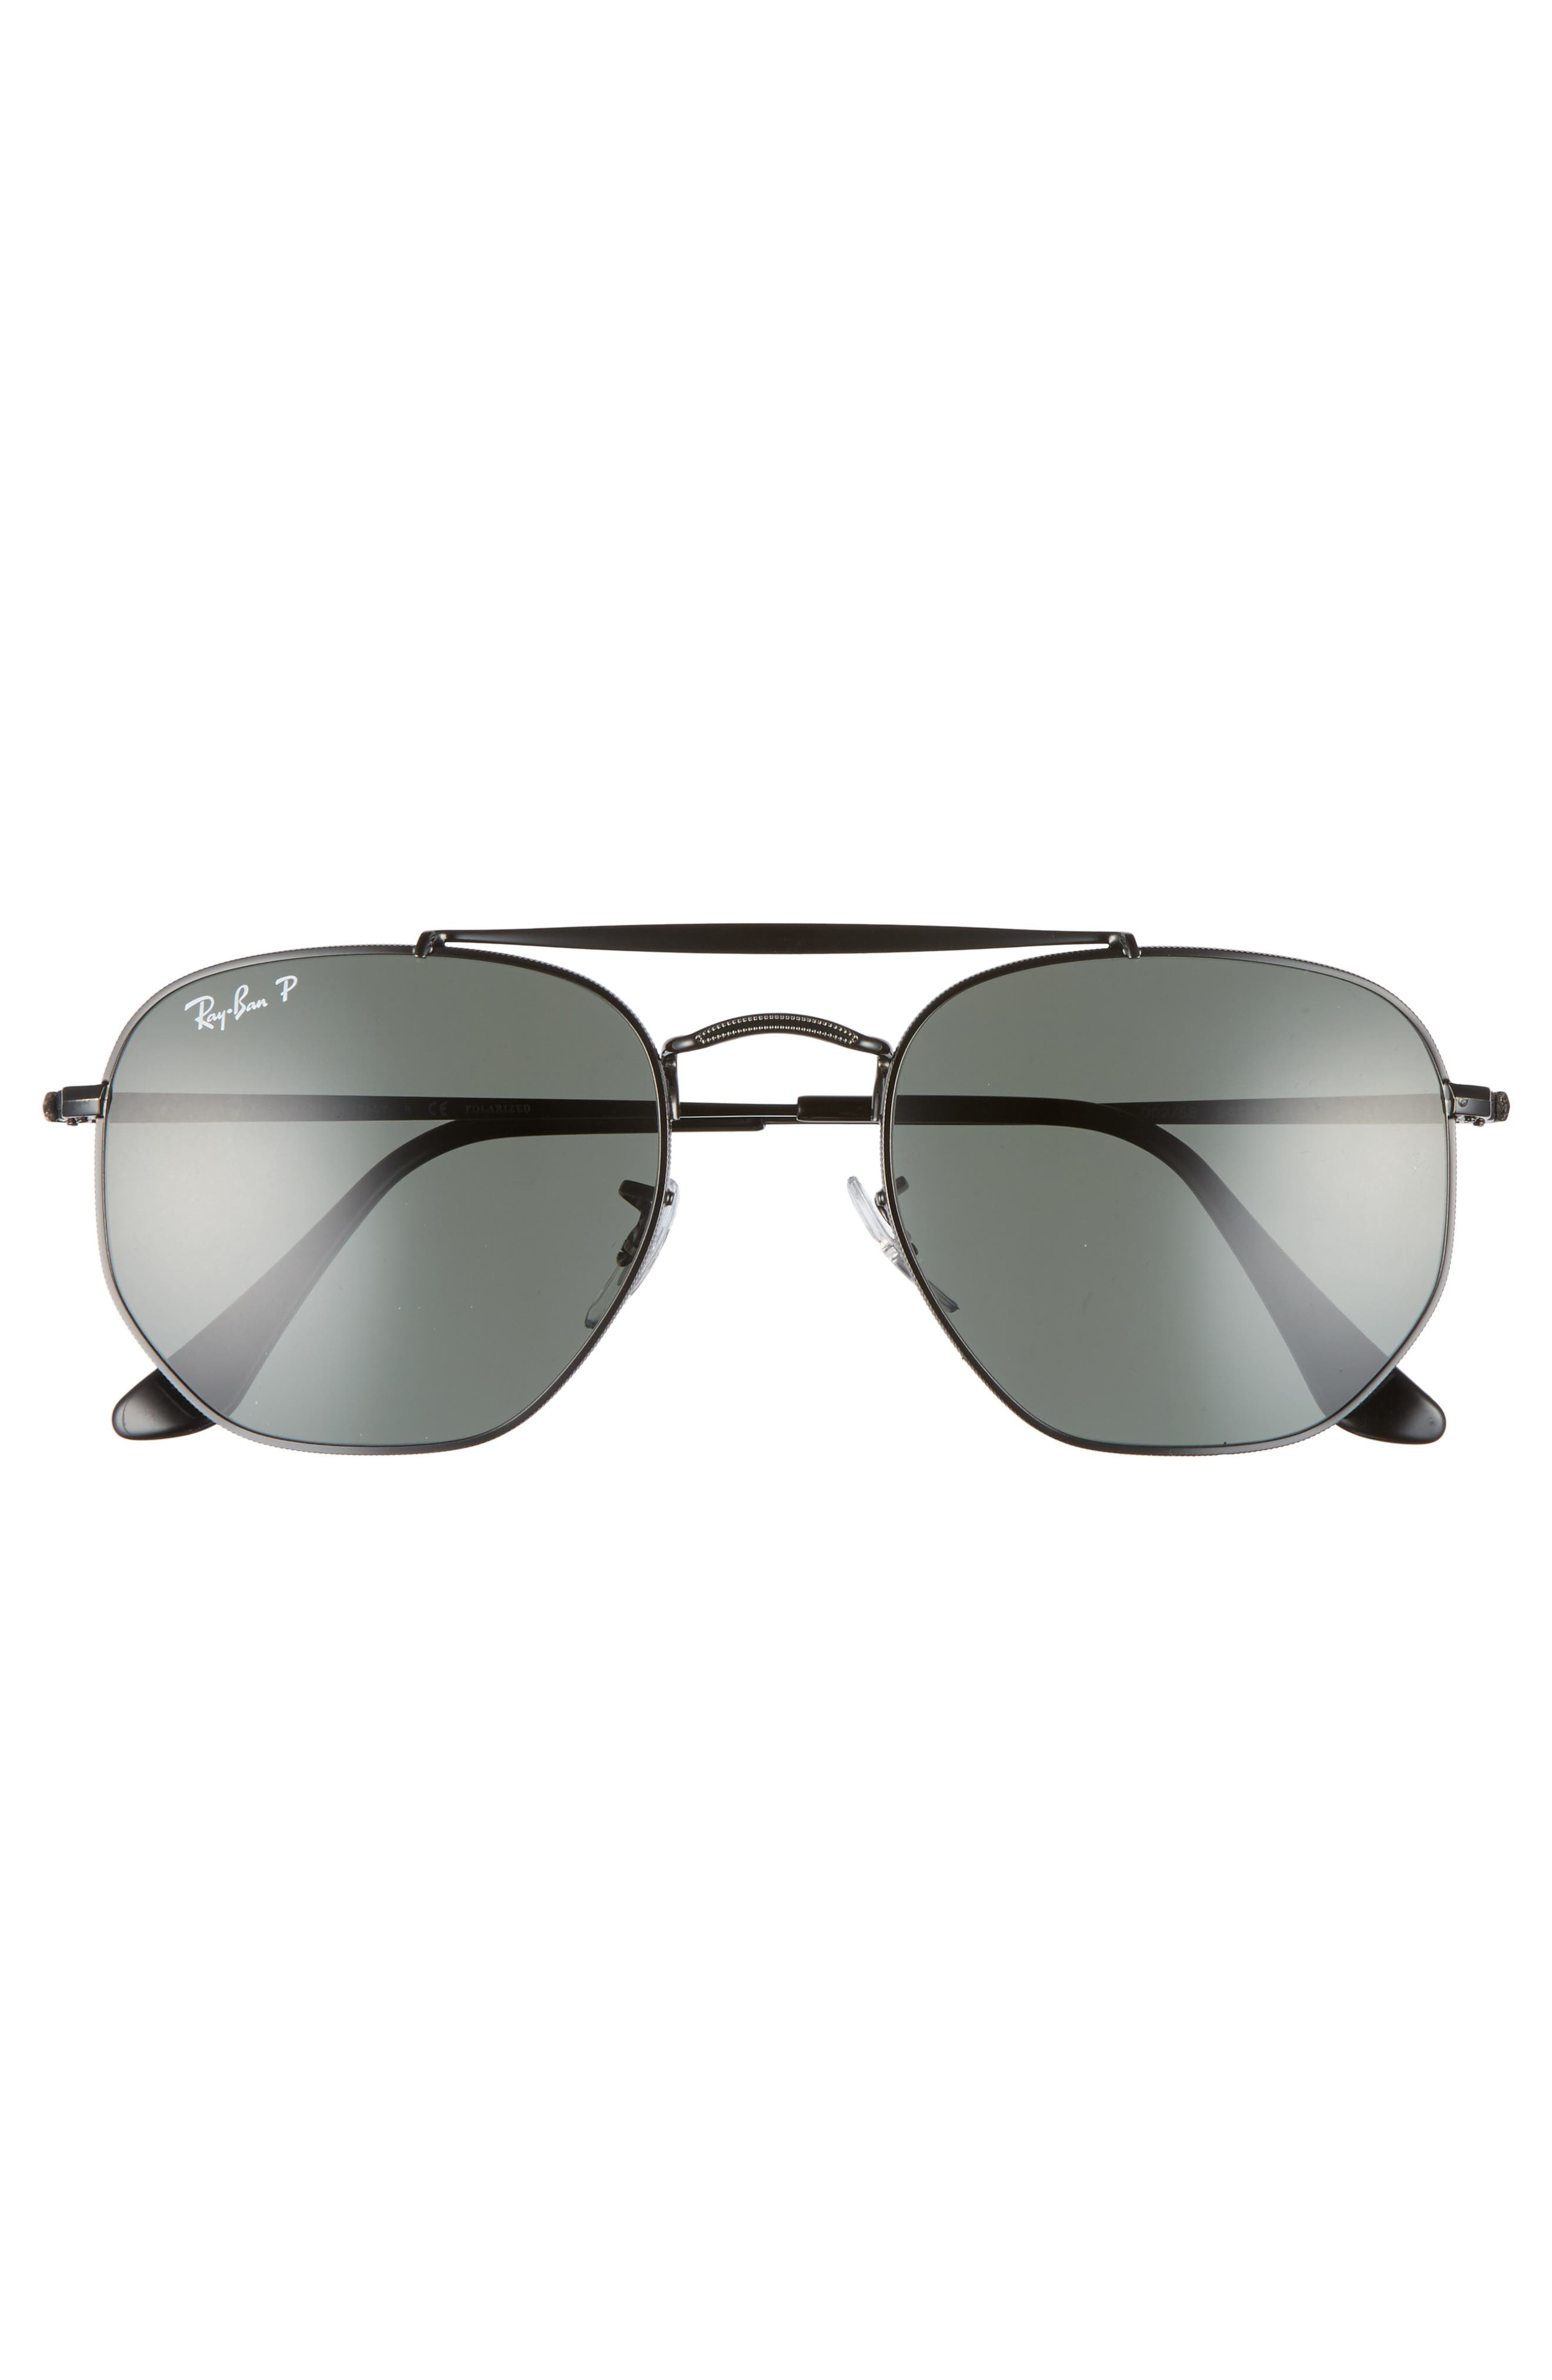 Marshal 54mm Polarized Aviator Sunglasses,                             Alternate thumbnail 2, color,                             BLACK POLARIZED